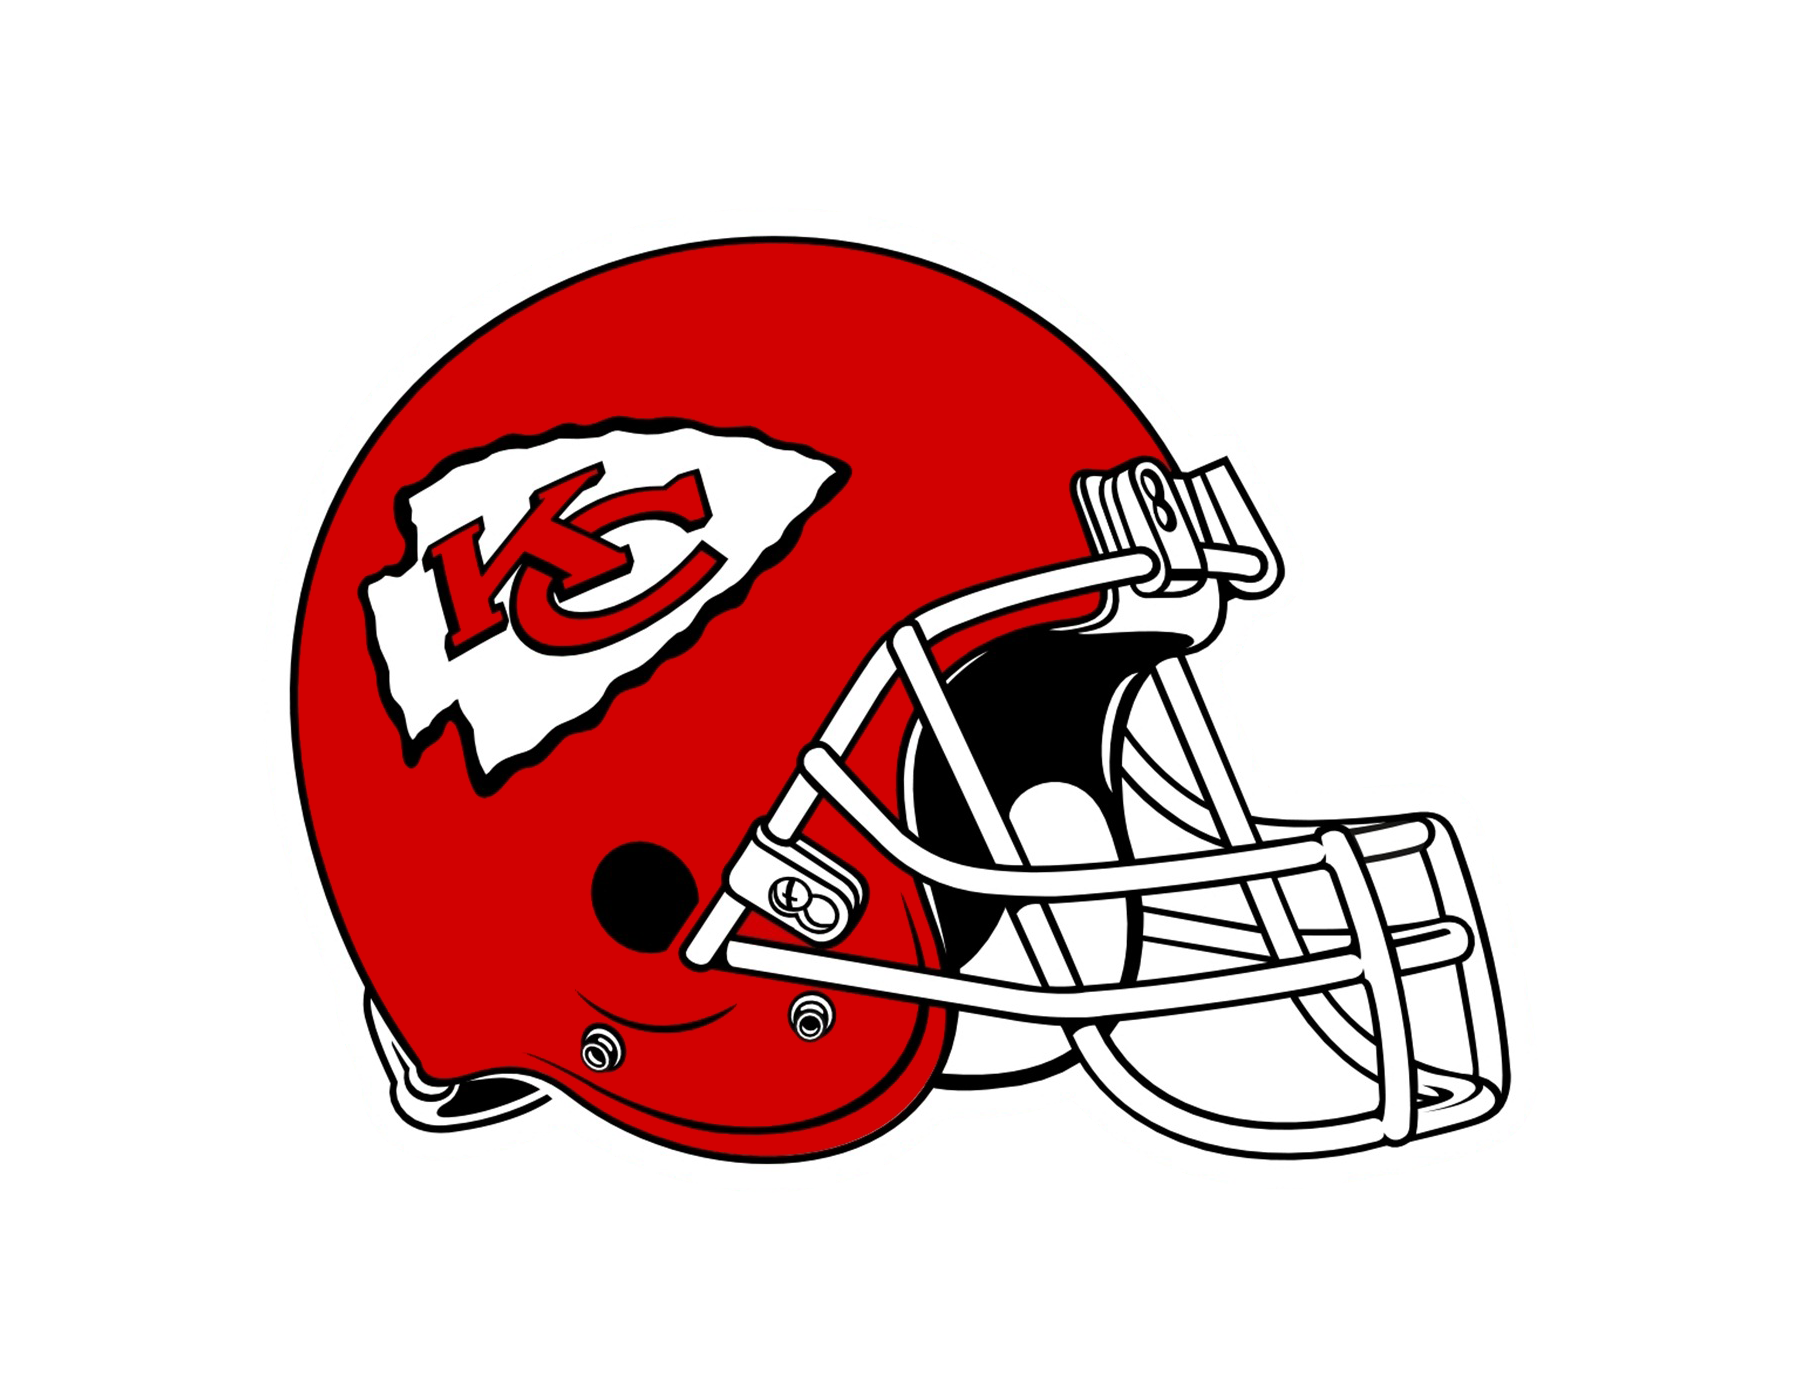 Kansas City Chiefs helmet logo - Kansas City Chiefs Vector PNG